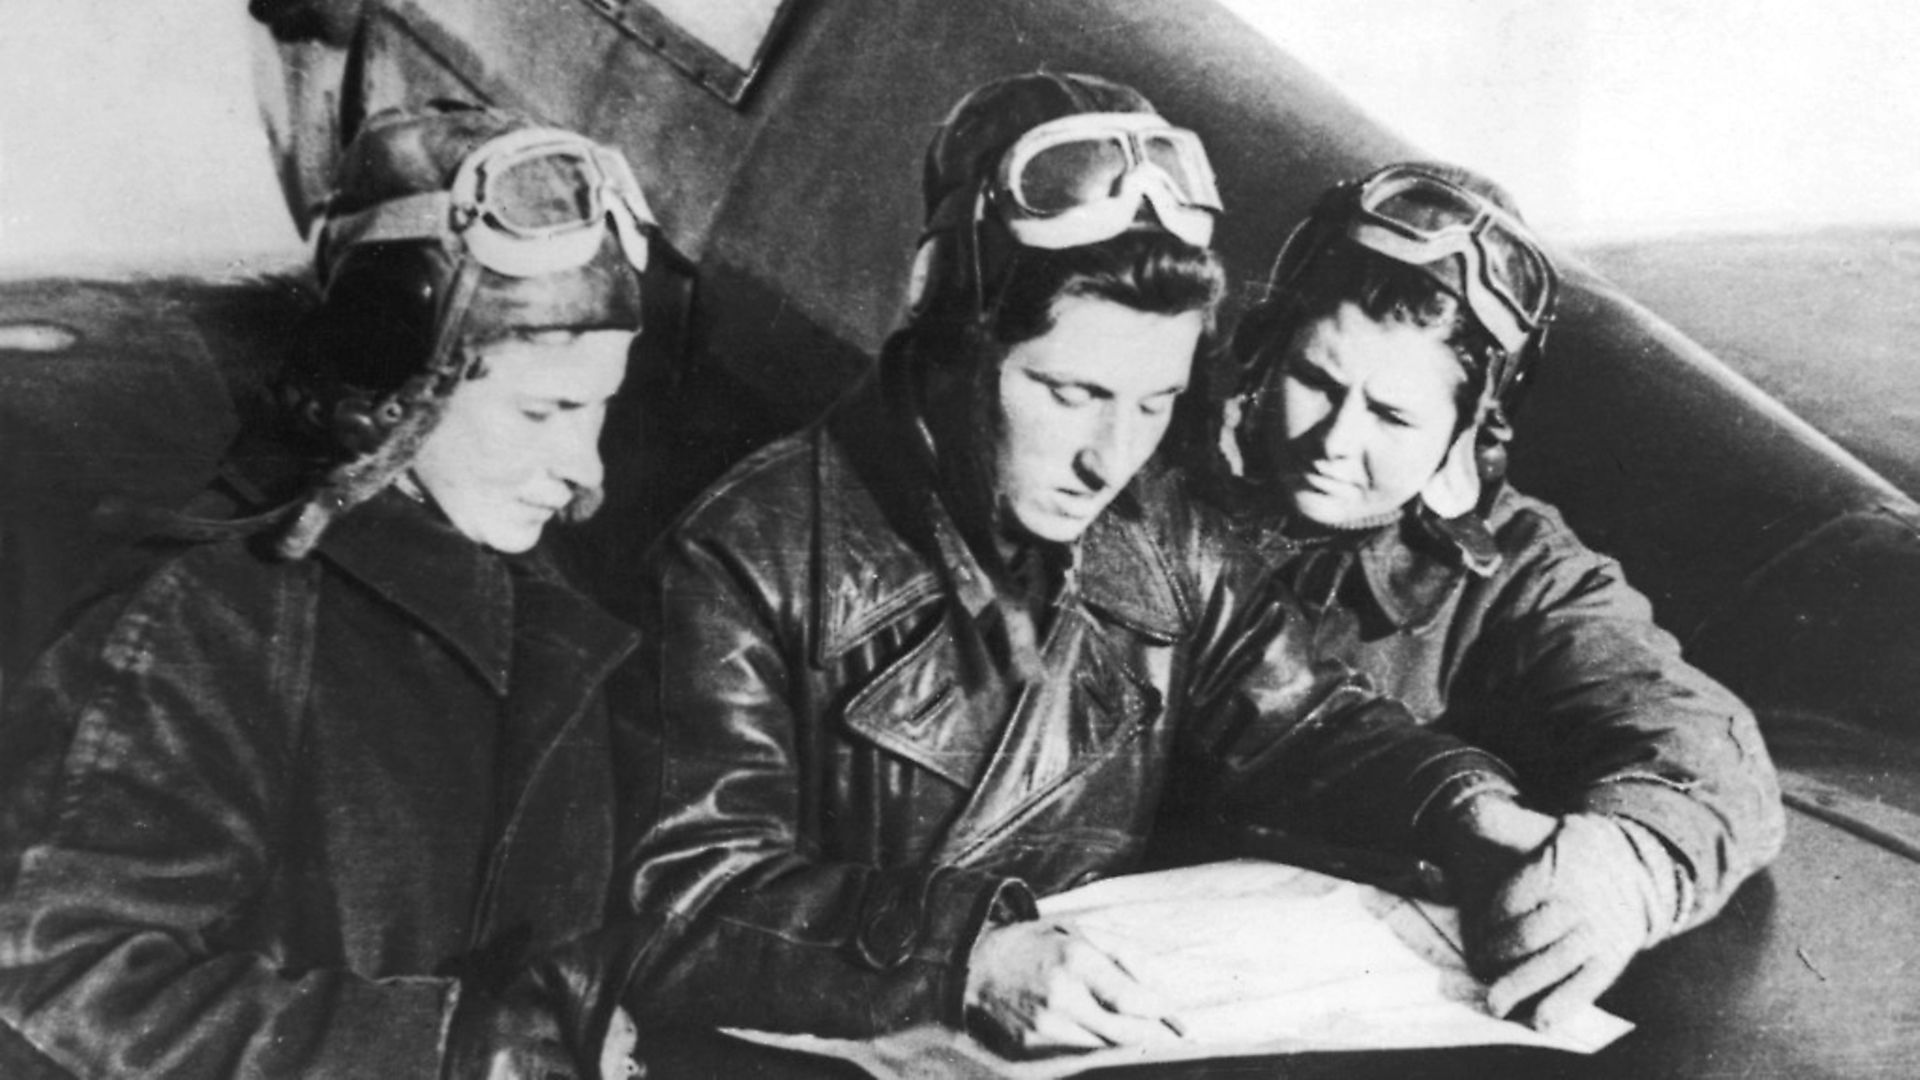 Russian female fighter pilots Lilya Litvyak (1921 - 1943) (left), Katerina Budanova (1916 - 1943) (center), and Mariya Kuznetsova, all of the 437th fighter regiment, plot their flight plans on the tailplane of a Yakovlev Yak-1 fighter plane, Russia, mid 1942. (Photo by Mansell/The LIFE Picture Collection via Getty Images/Getty Images) - Credit: The LIFE Picture Collection via